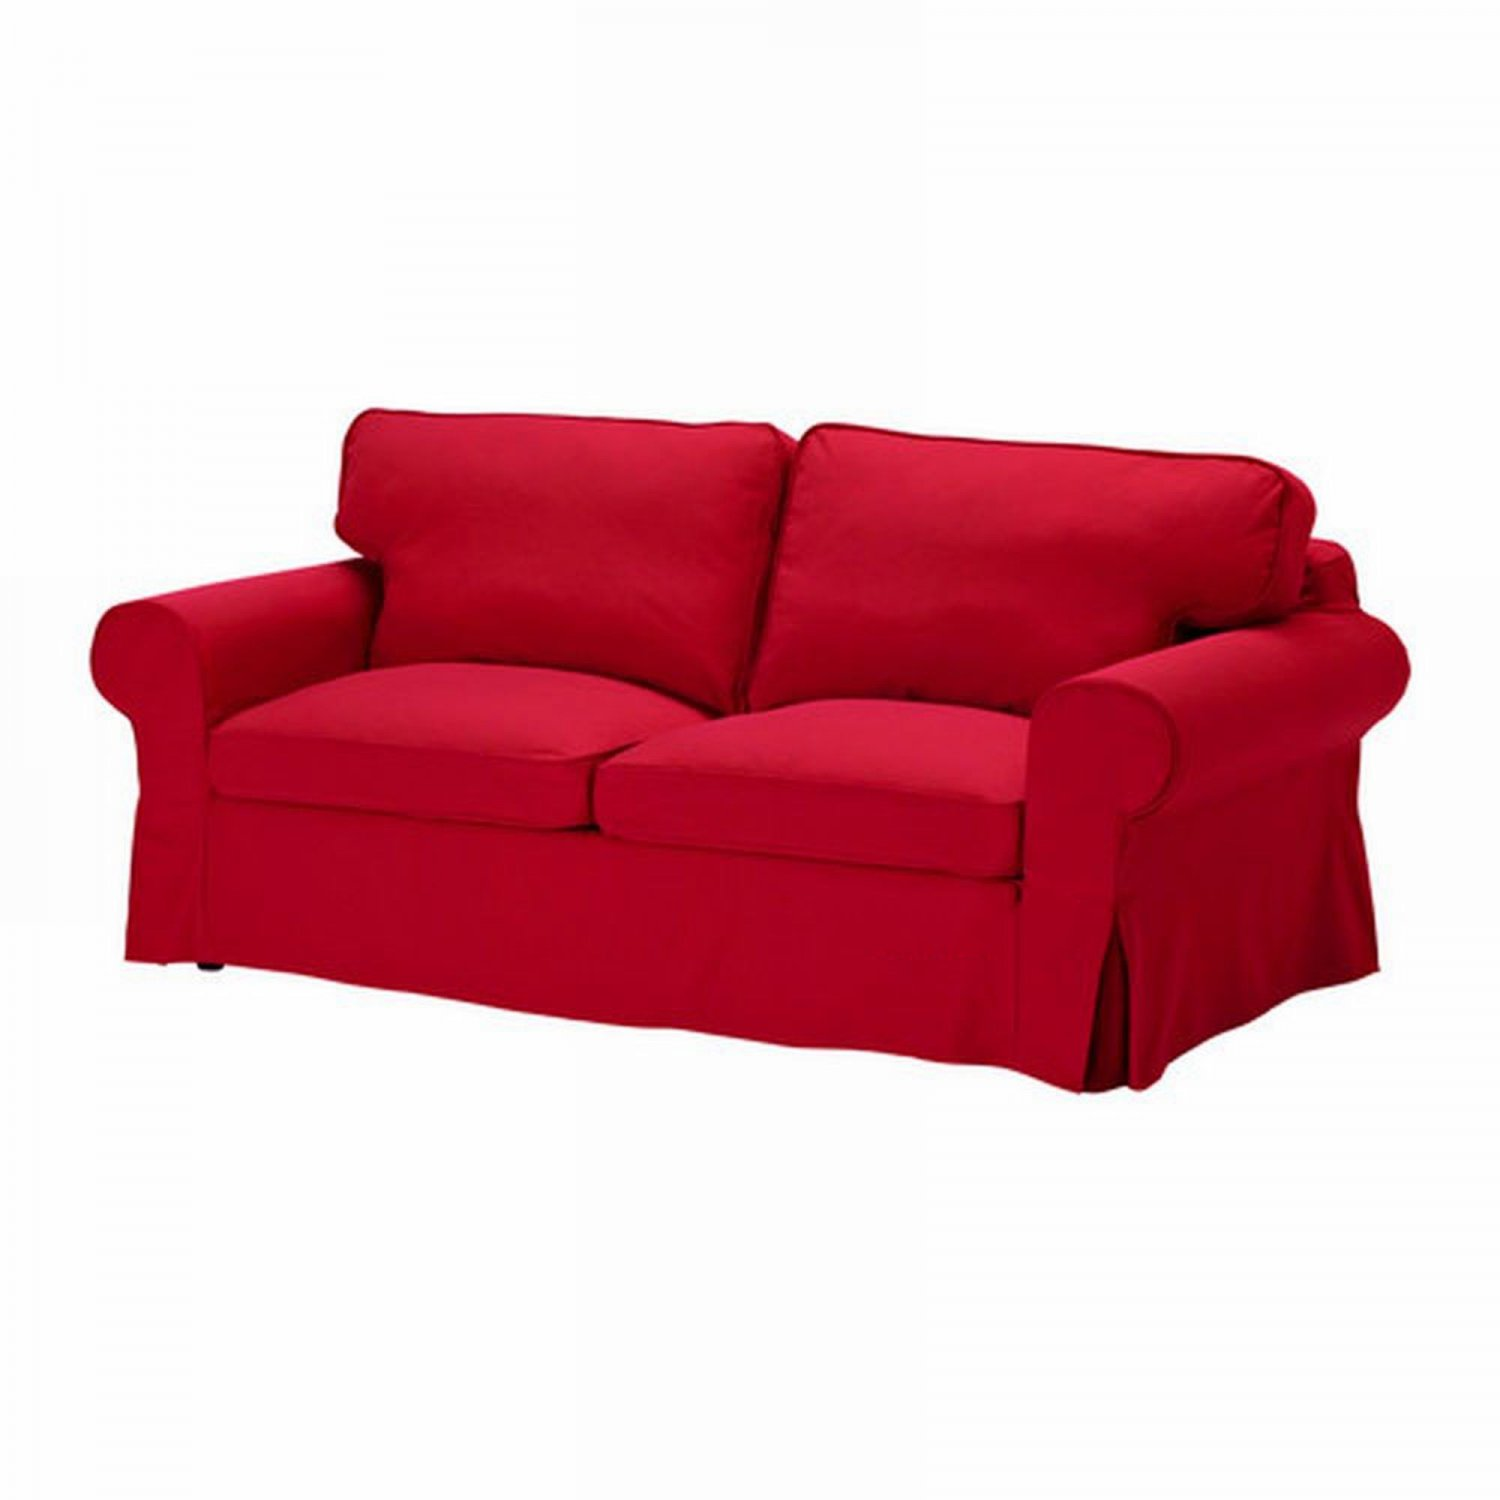 Ikea Sofa K Ikea Ektorp Sofa Bed Slipcover Cover Idemo Red Sofabed Cvr